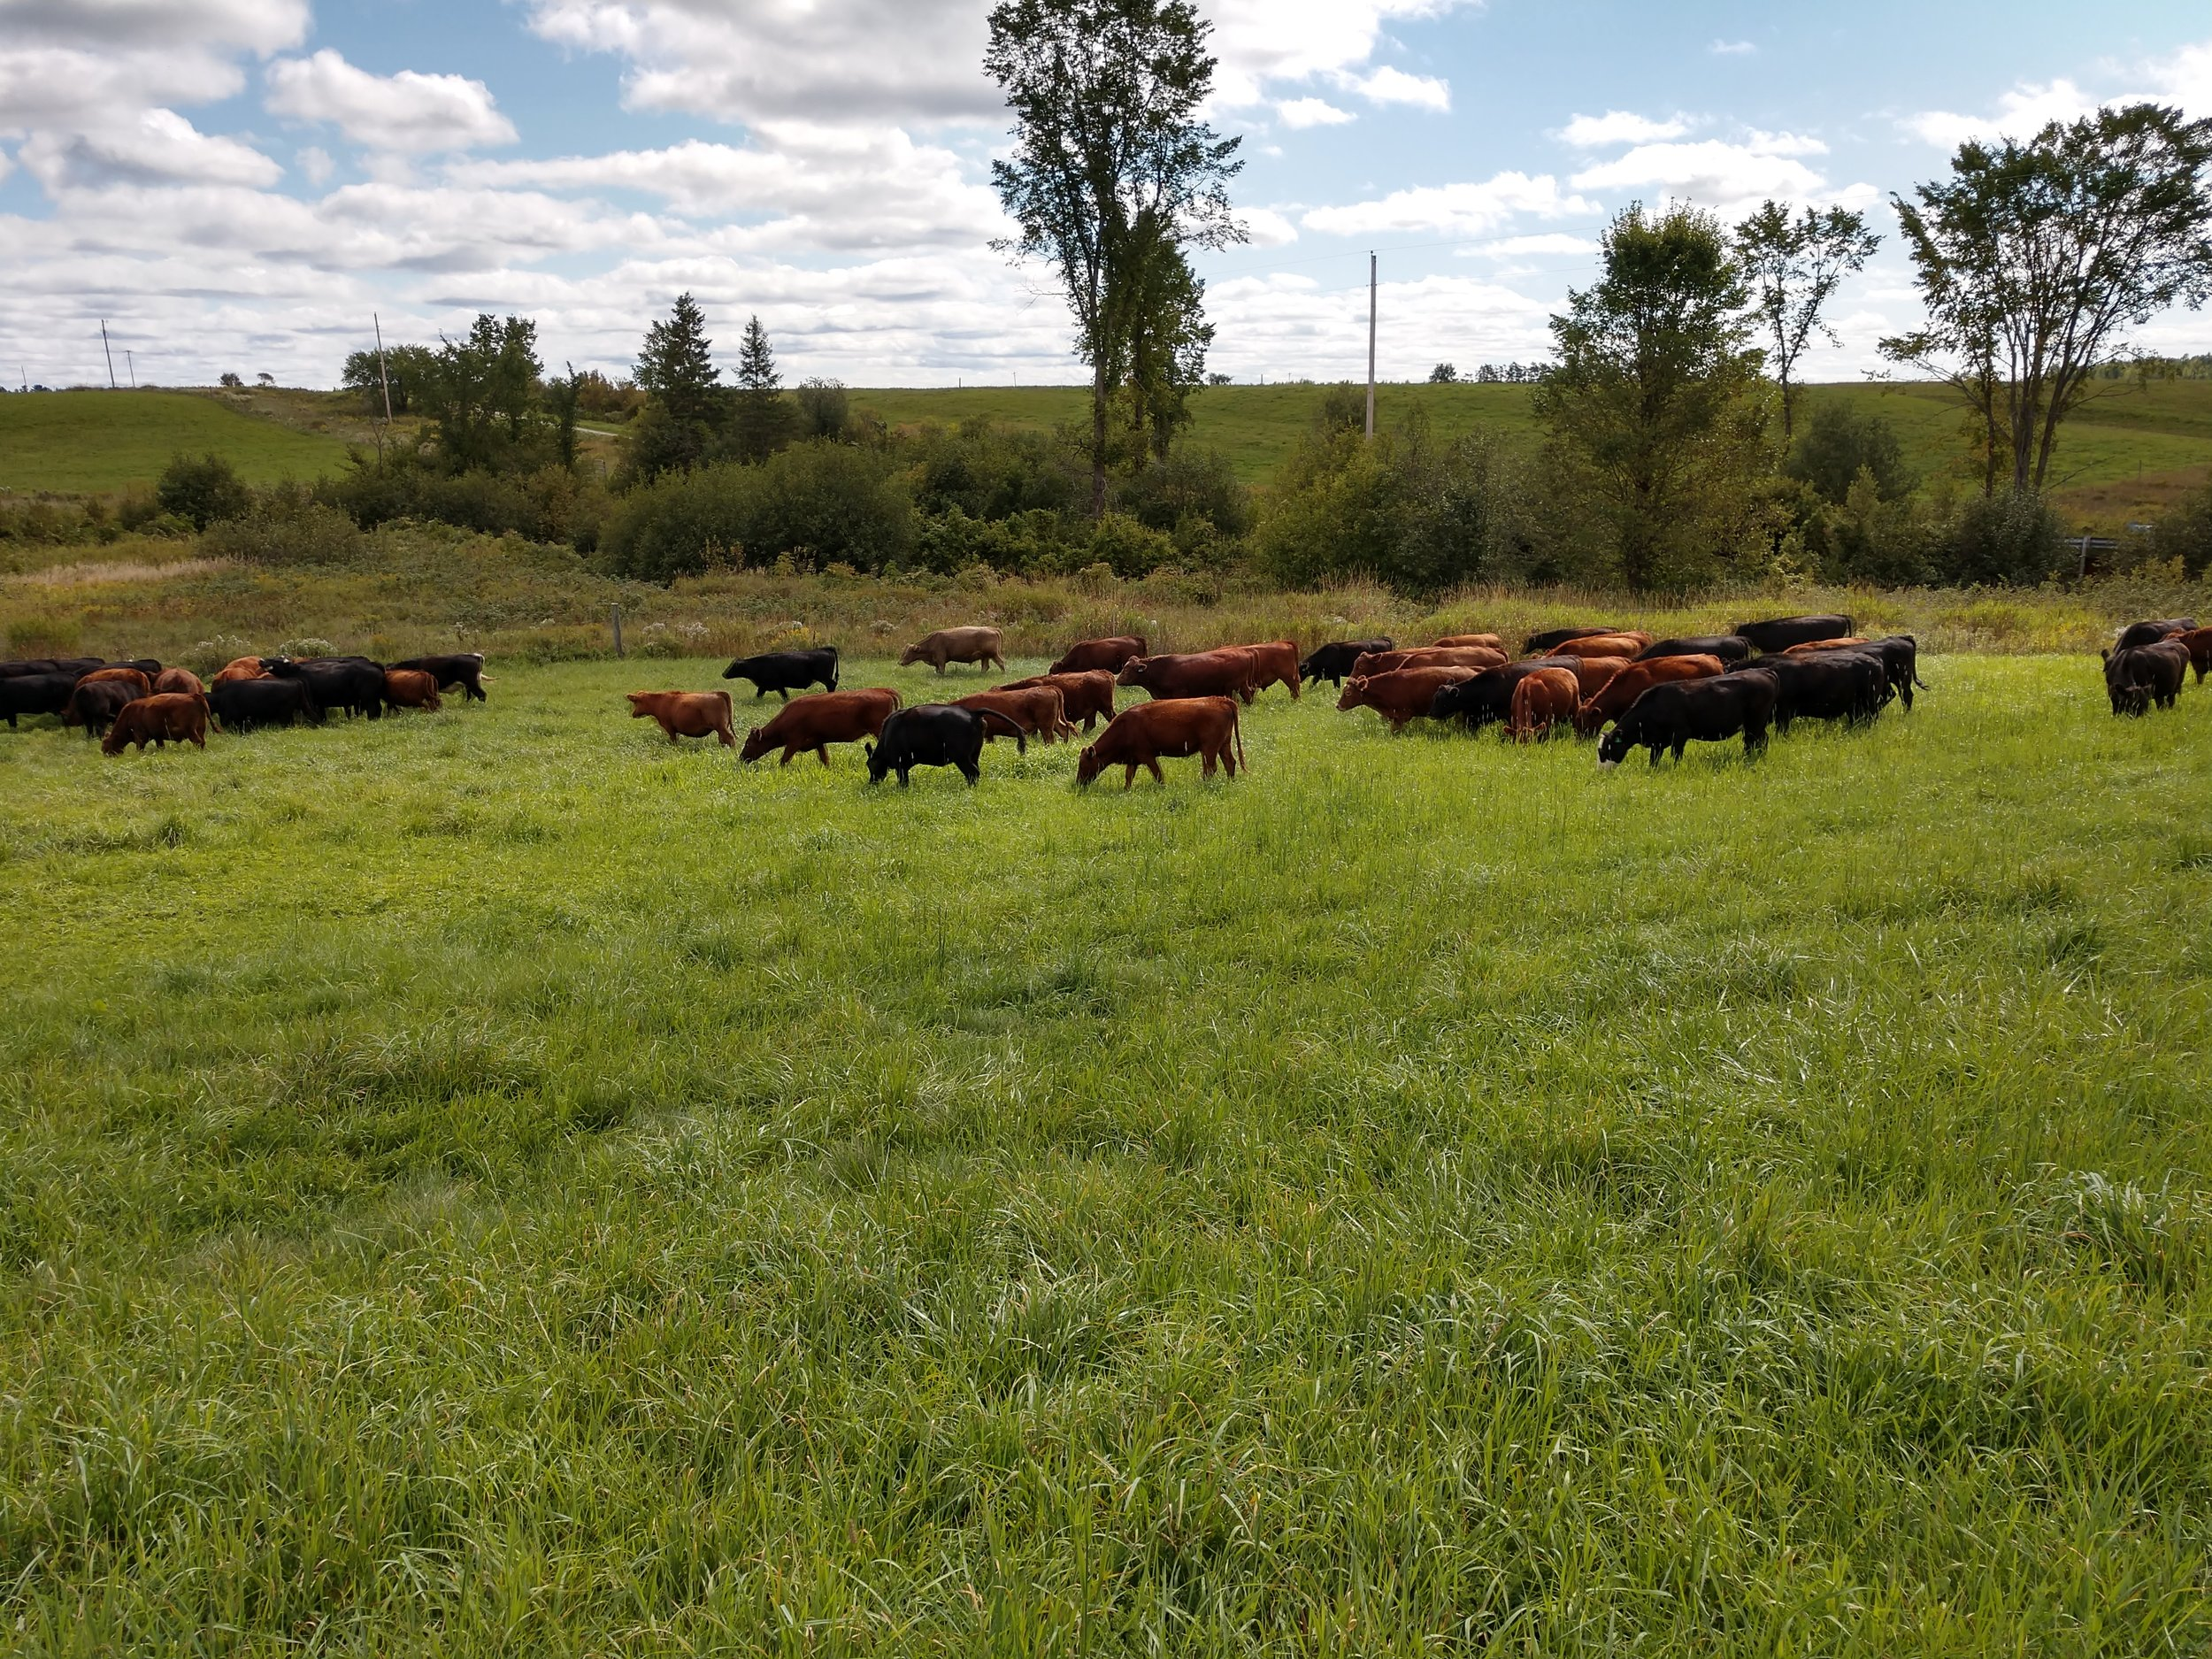 cover photo - cattle grazing with blue sky in distance.jpg